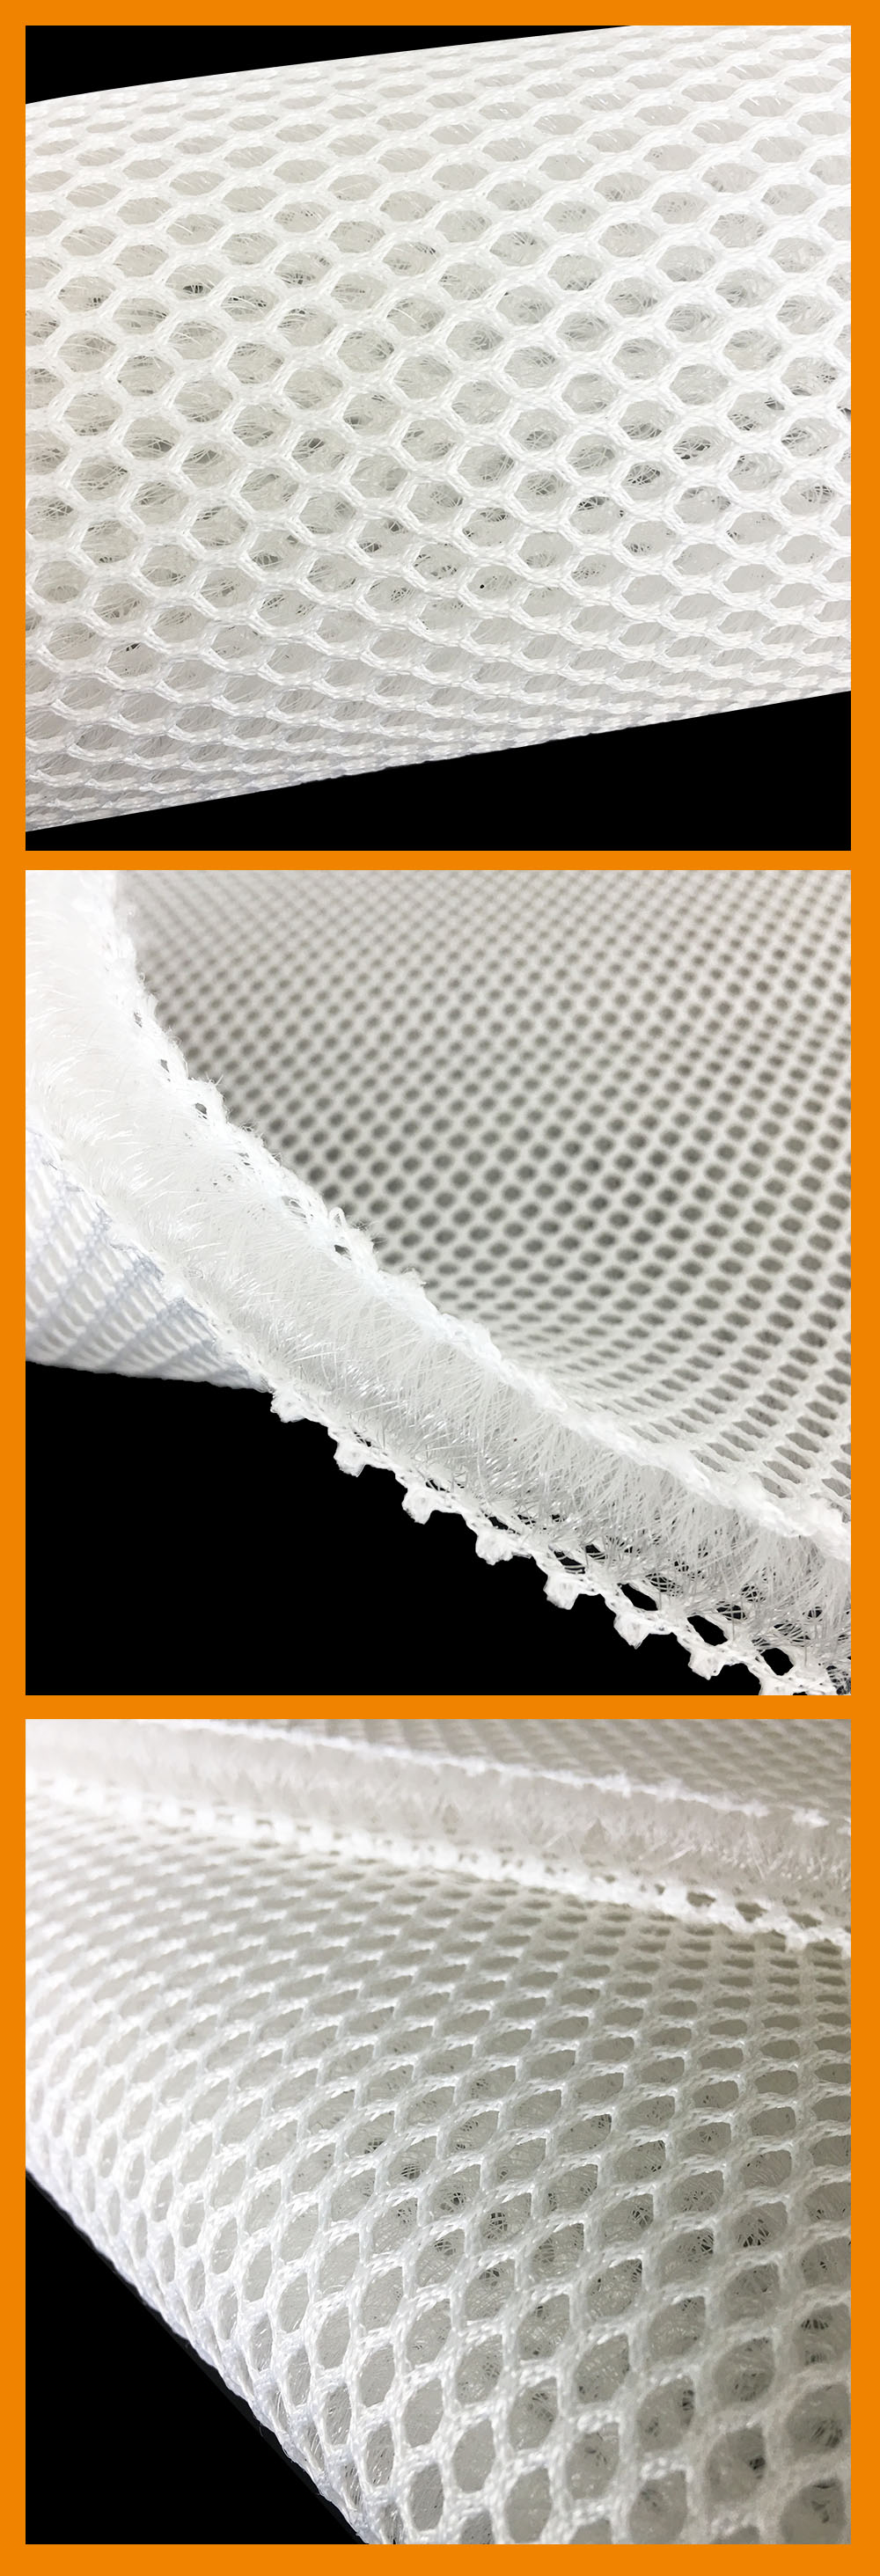 12mm thickness air conditioning padded mesh fabric, mattress fabric 3d